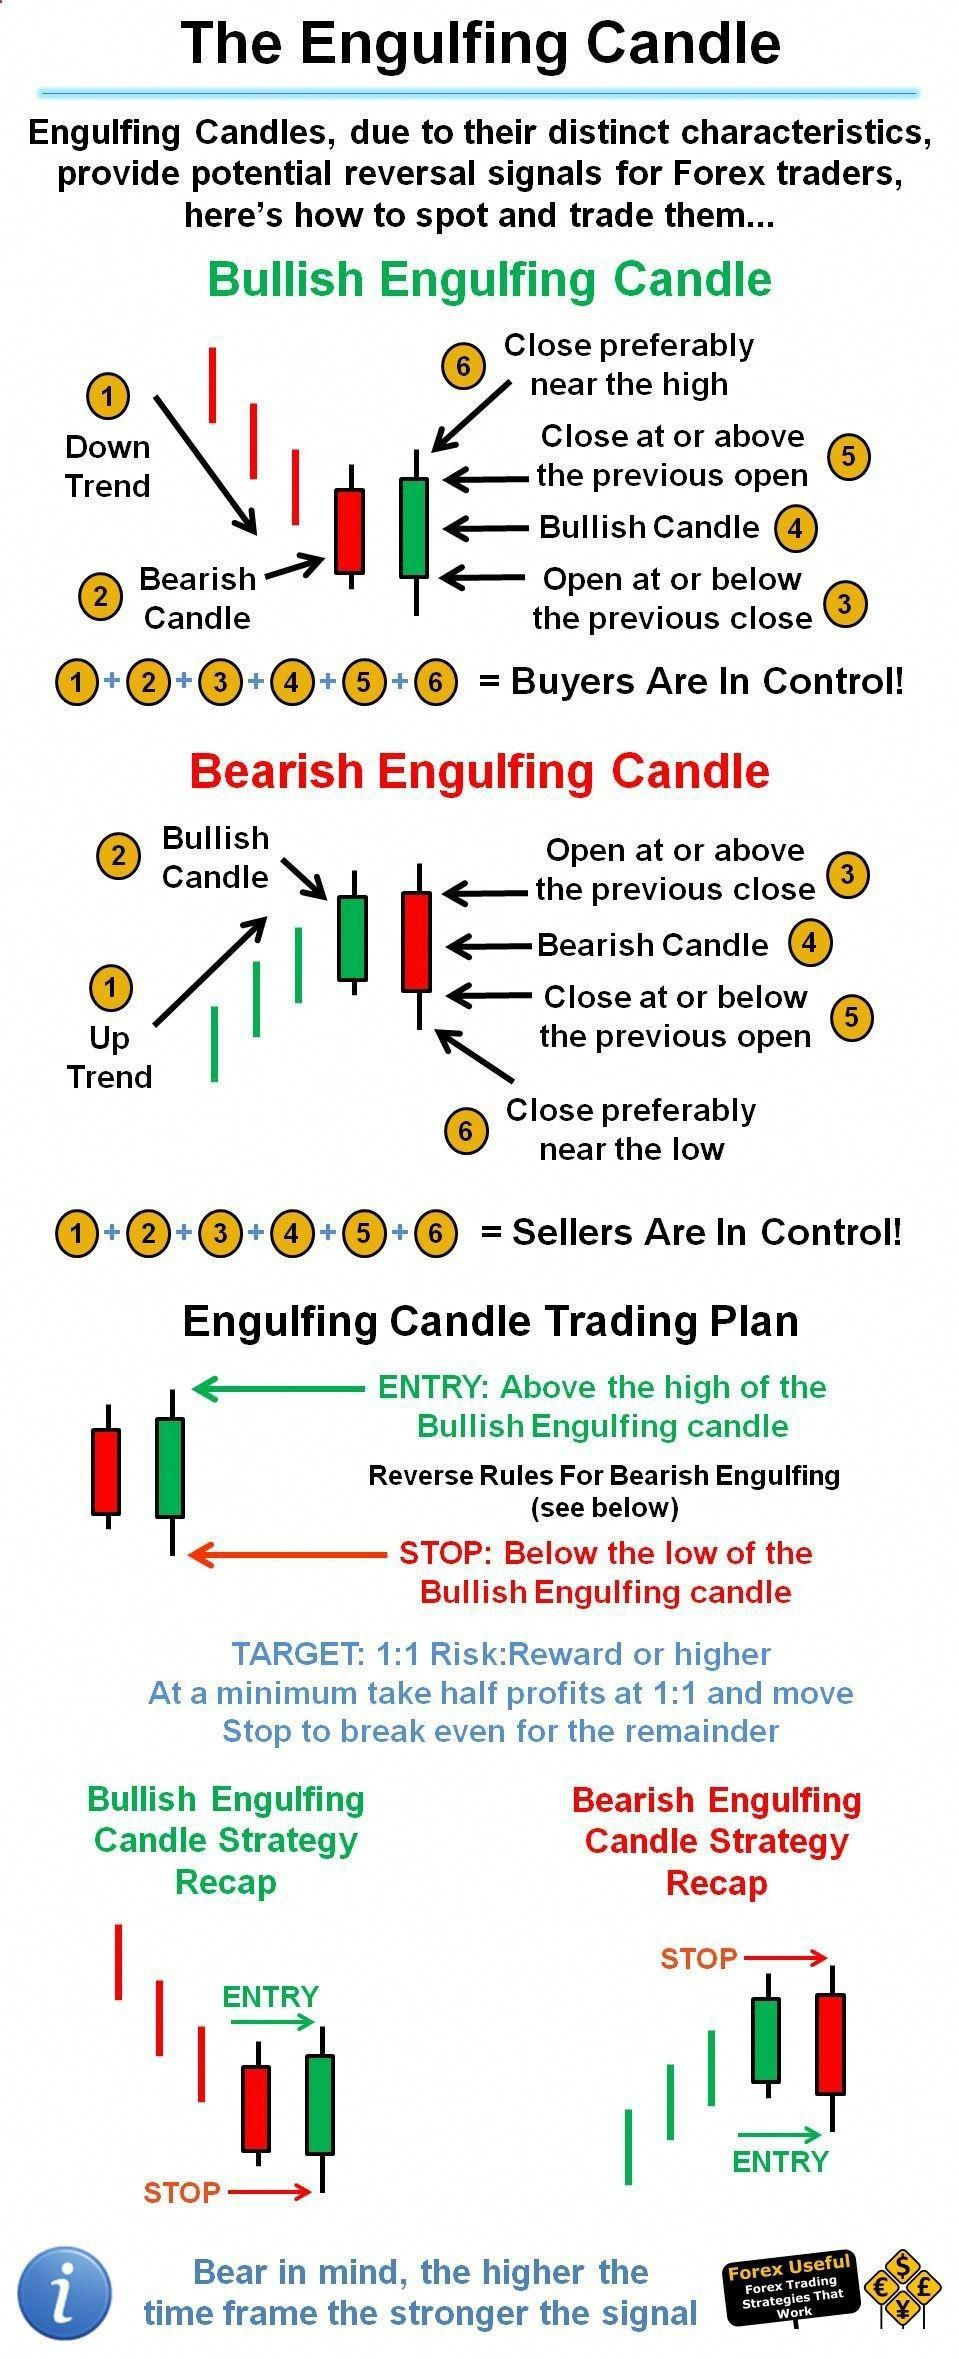 Forexuseful Engulfing Candles Due To Their Distinct